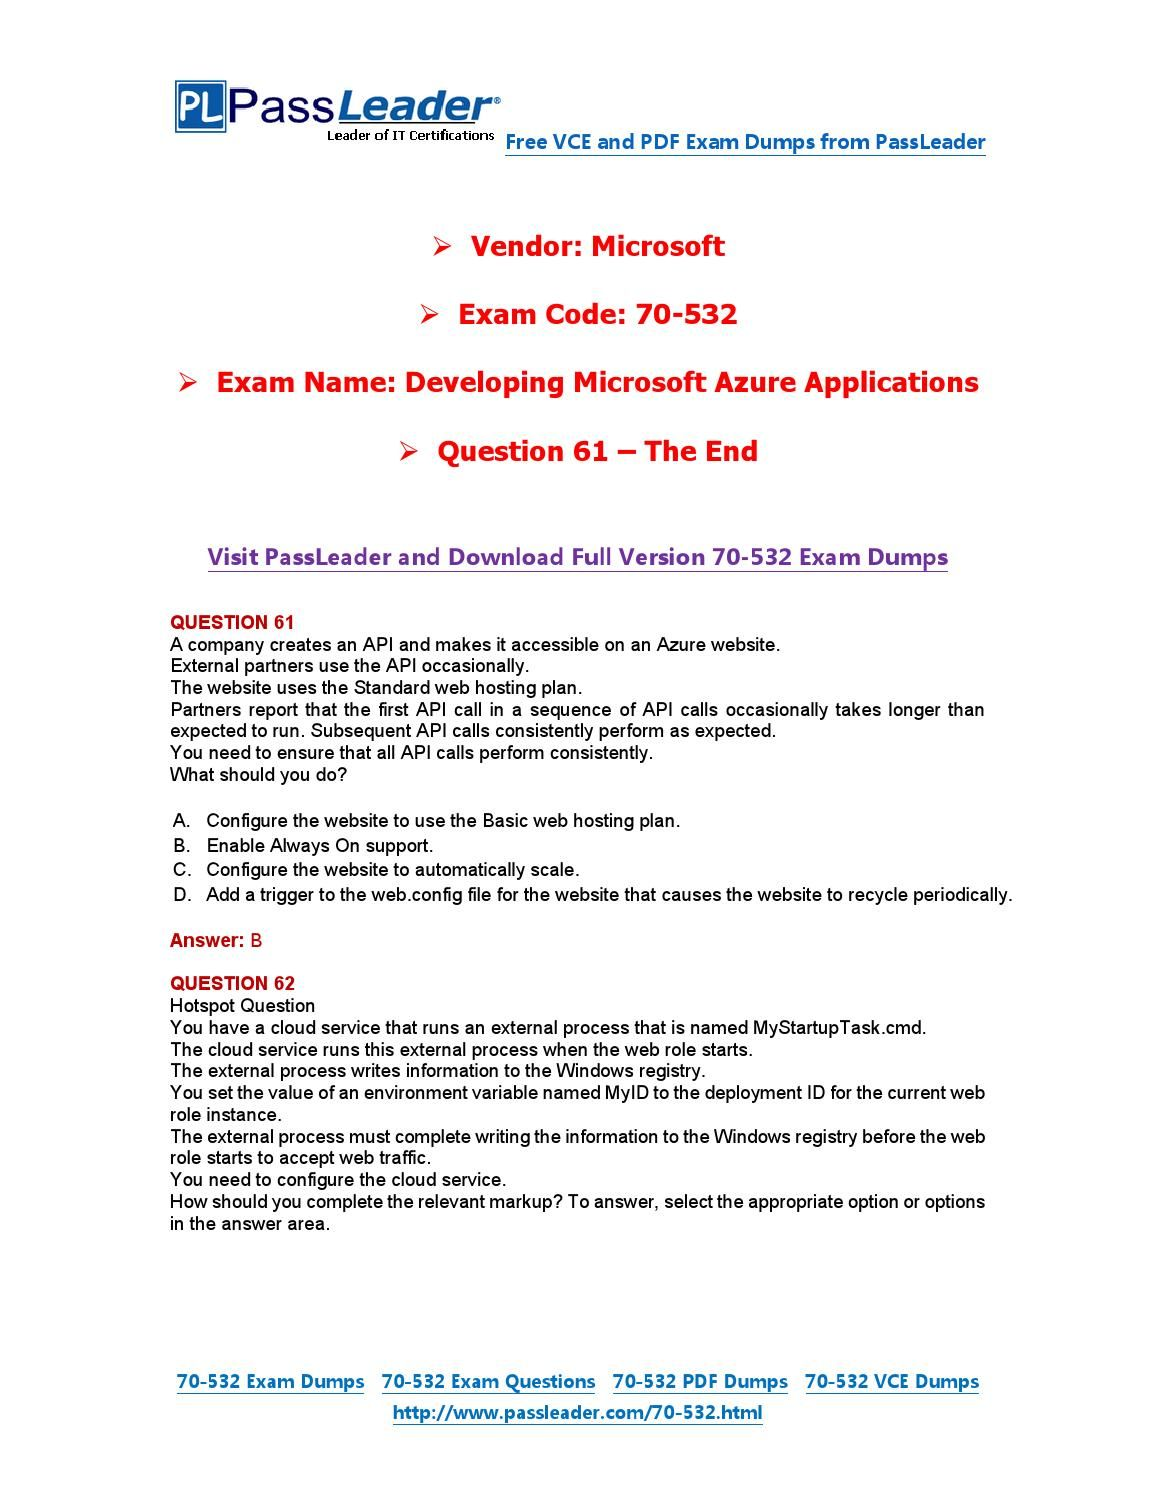 70 532 Exam Dumps With Pdf And Vce Download 61 End 70 532 Exam